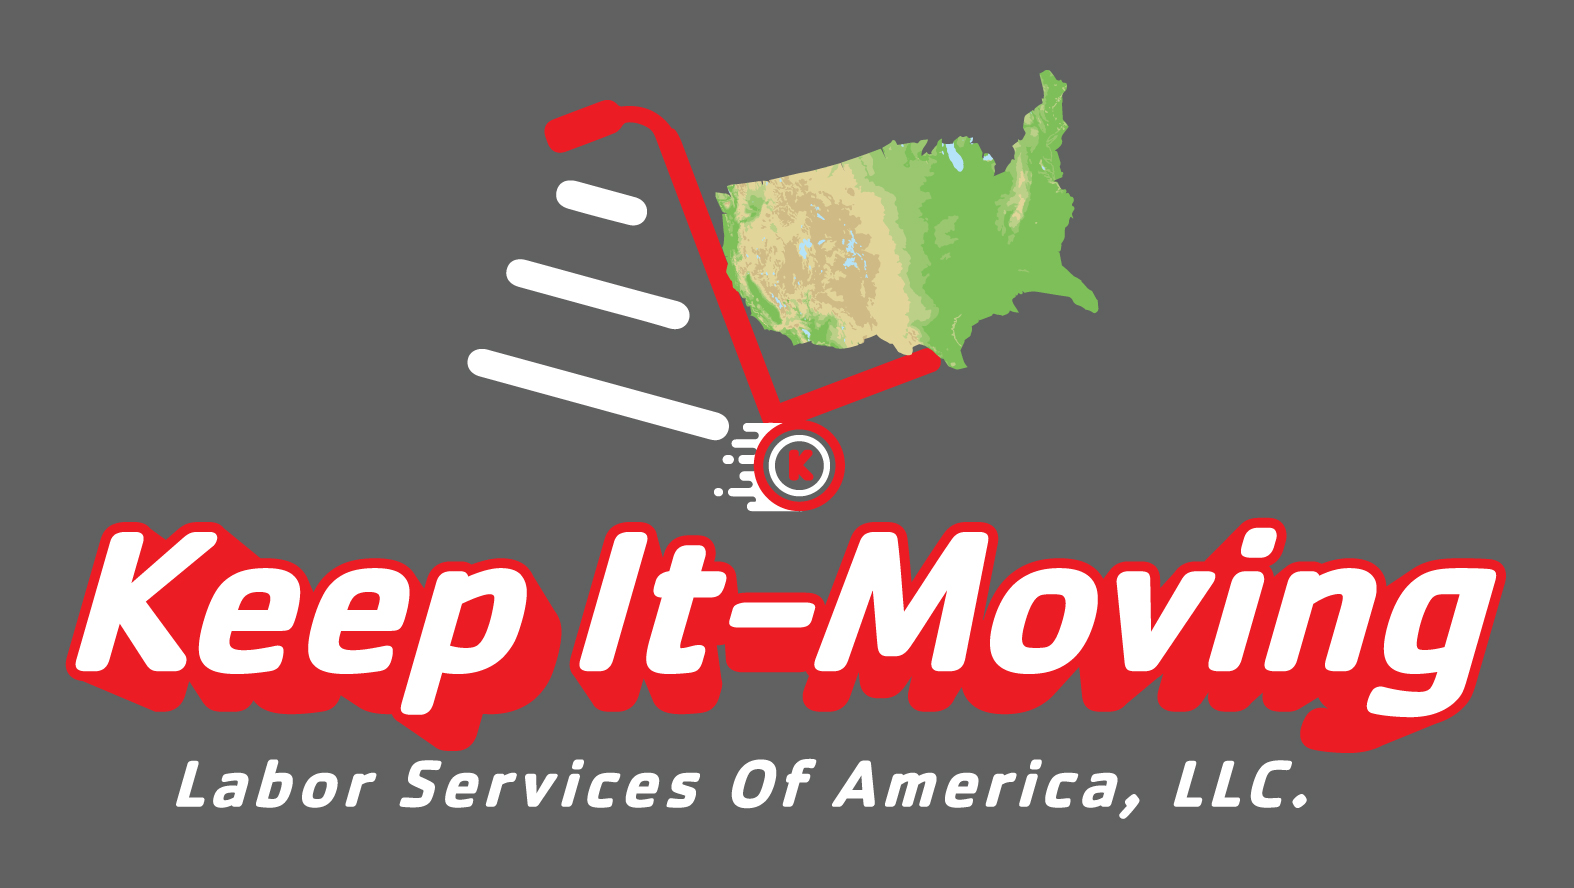 Keep It Moving Labor Services Of America LLC